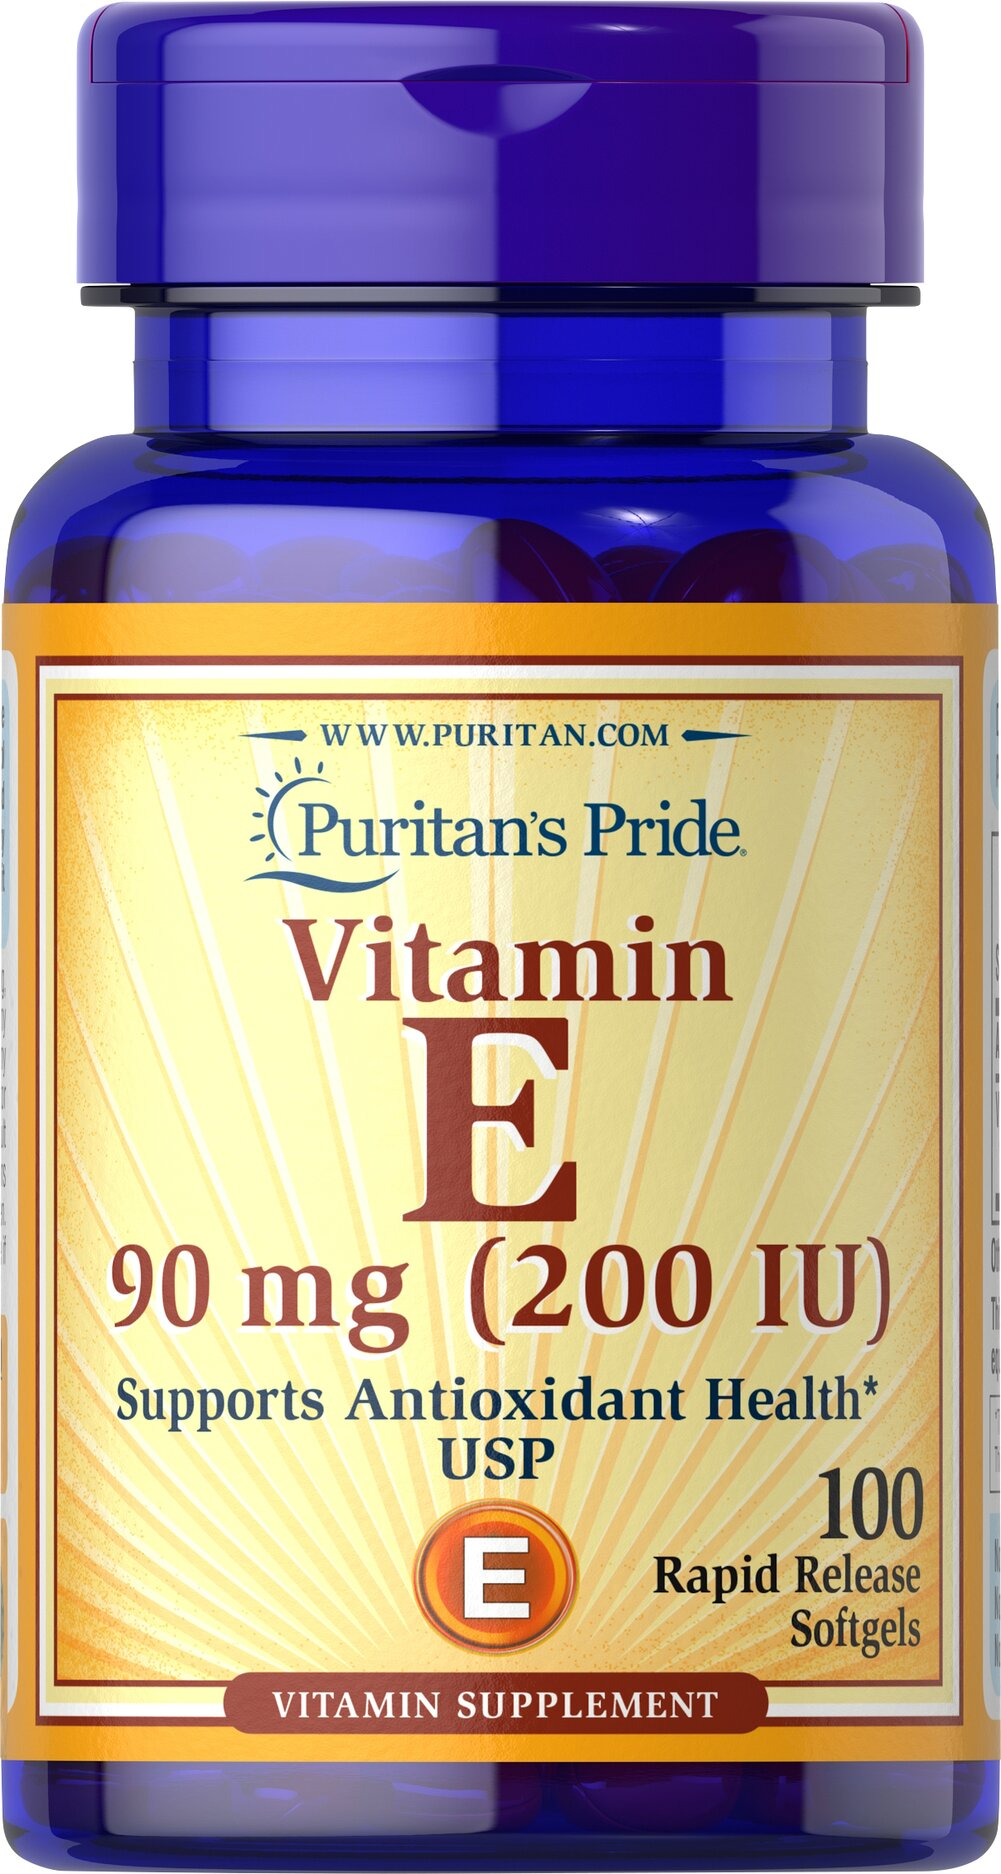 Vitamin E-200 IU <p>Features dl-Alpha Vitamin E, a synthetic form of Vitamin E</p> <p>Promotes heart and circulatory health**</p> <p>Contributes to healthy skin and immune function**</p> <p>Rapid release liquid softgels are easy to swallow</p> <p>One a day formula</p> 100 Softgels 200 IU $7.49